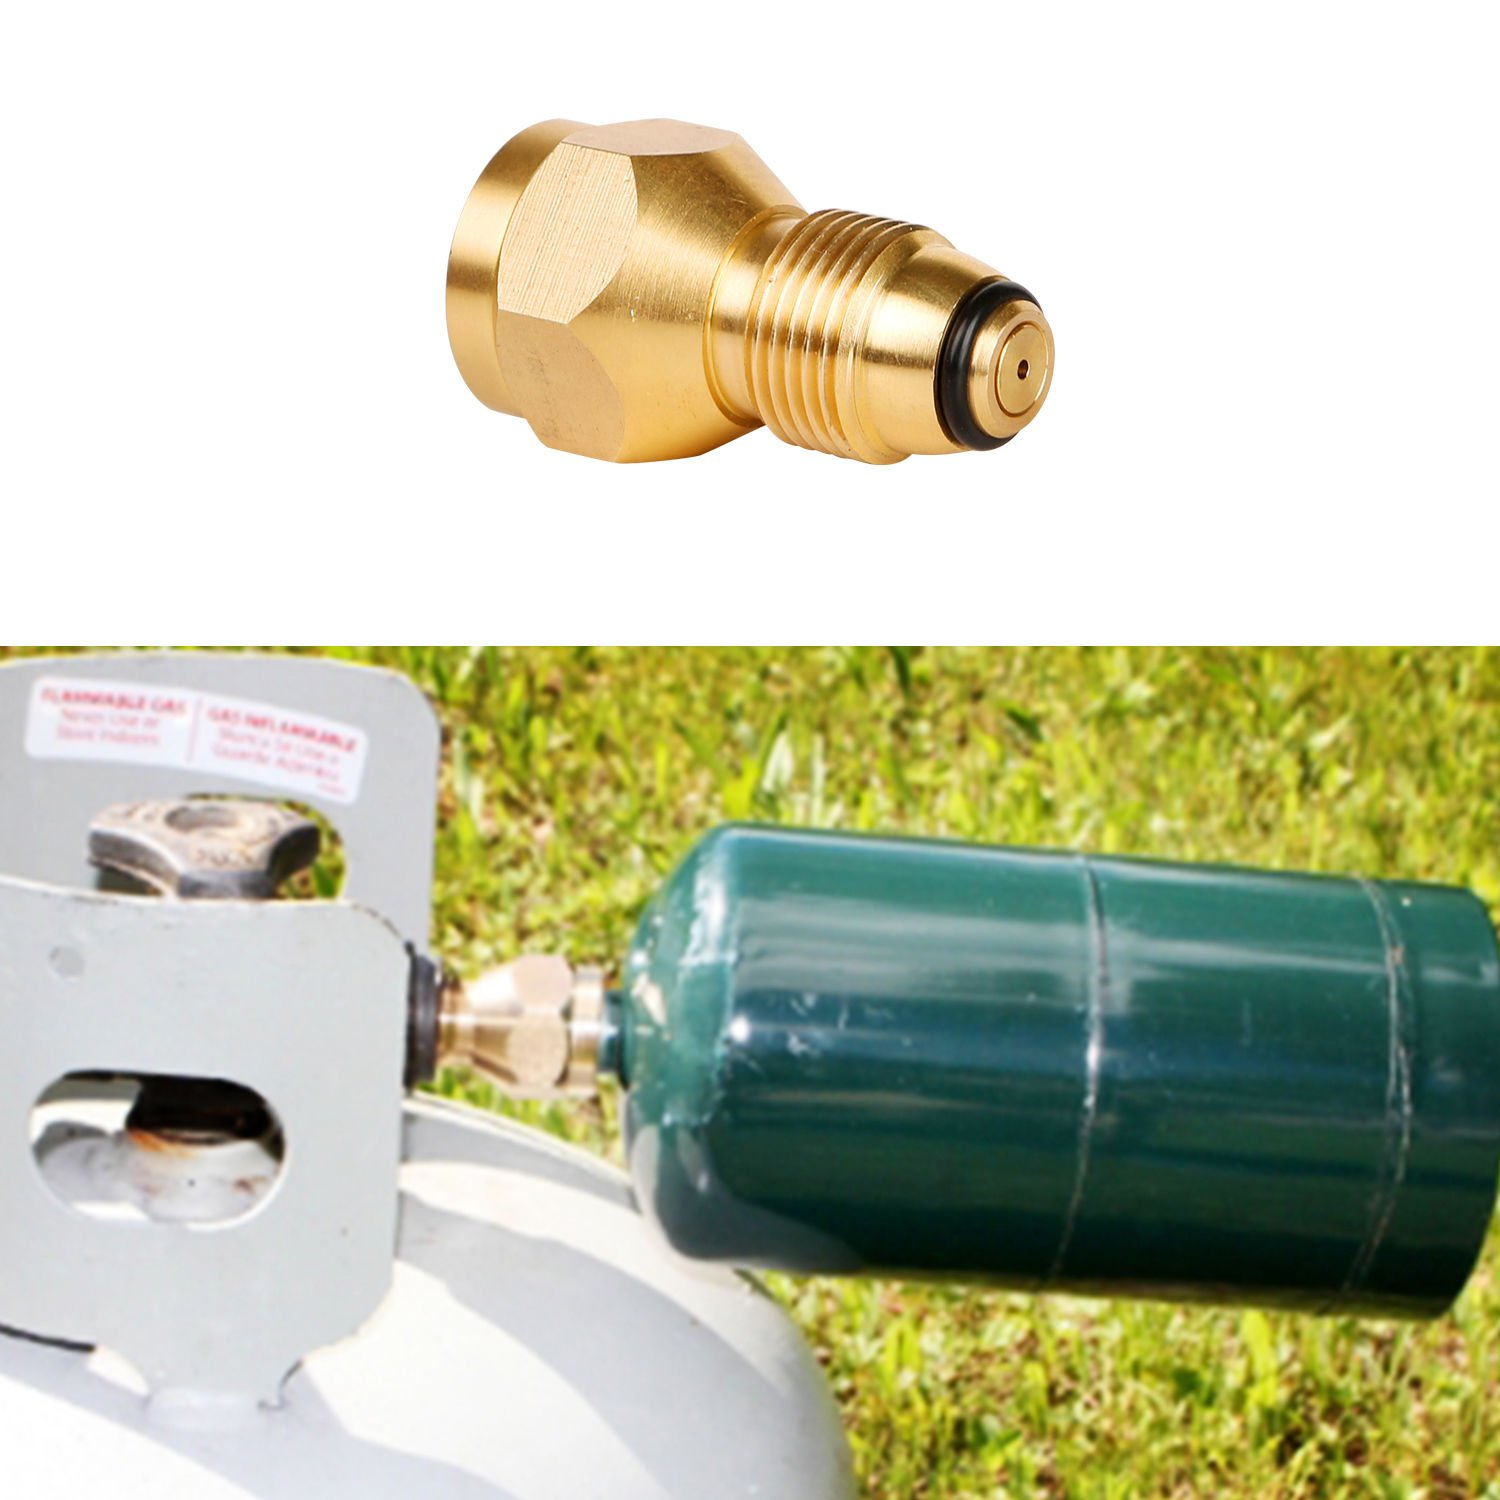 Propane Refill Adapter Lp Gas 1 Lb Cylinder Tank Coupler Heater Bottles Coleman Easy Propane Bottle Refill Alternative Materials Brass Brand New